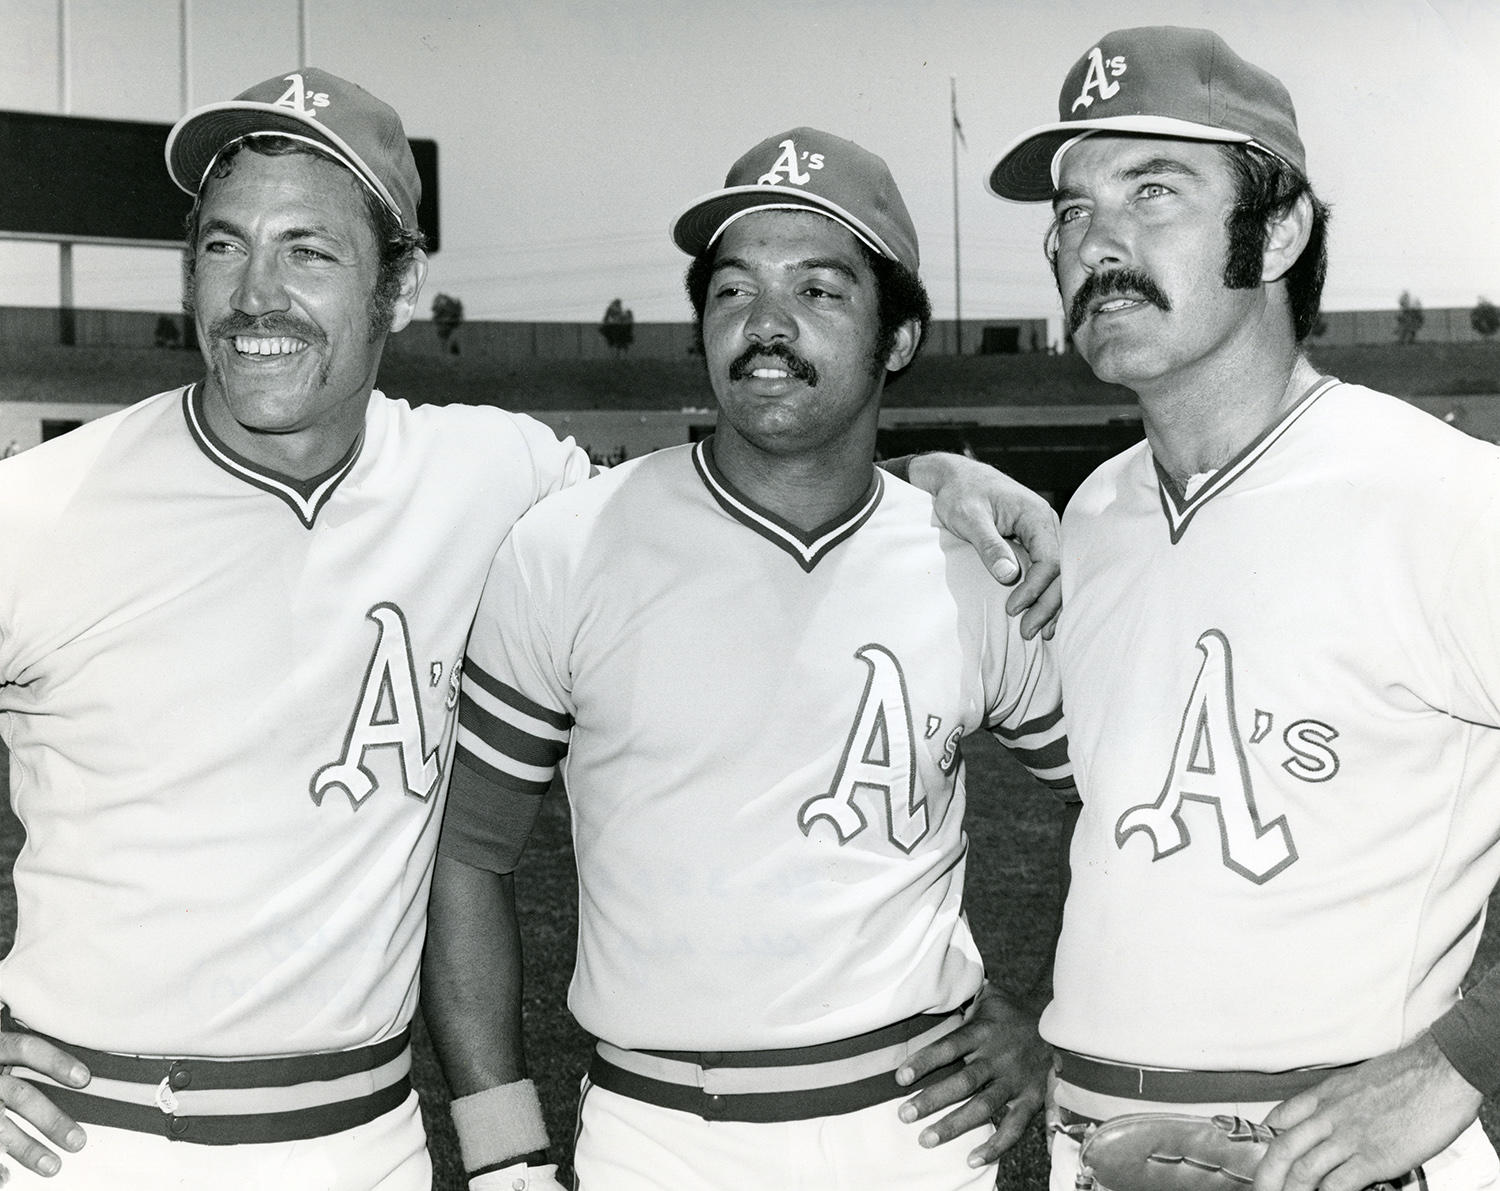 Reggie Jackson (center) pictured with two members of the 1972 Oakland Athletics: Mike Epstein (left) and Darold Knowles (right).  (National Baseball Hall of Fame and Museum)